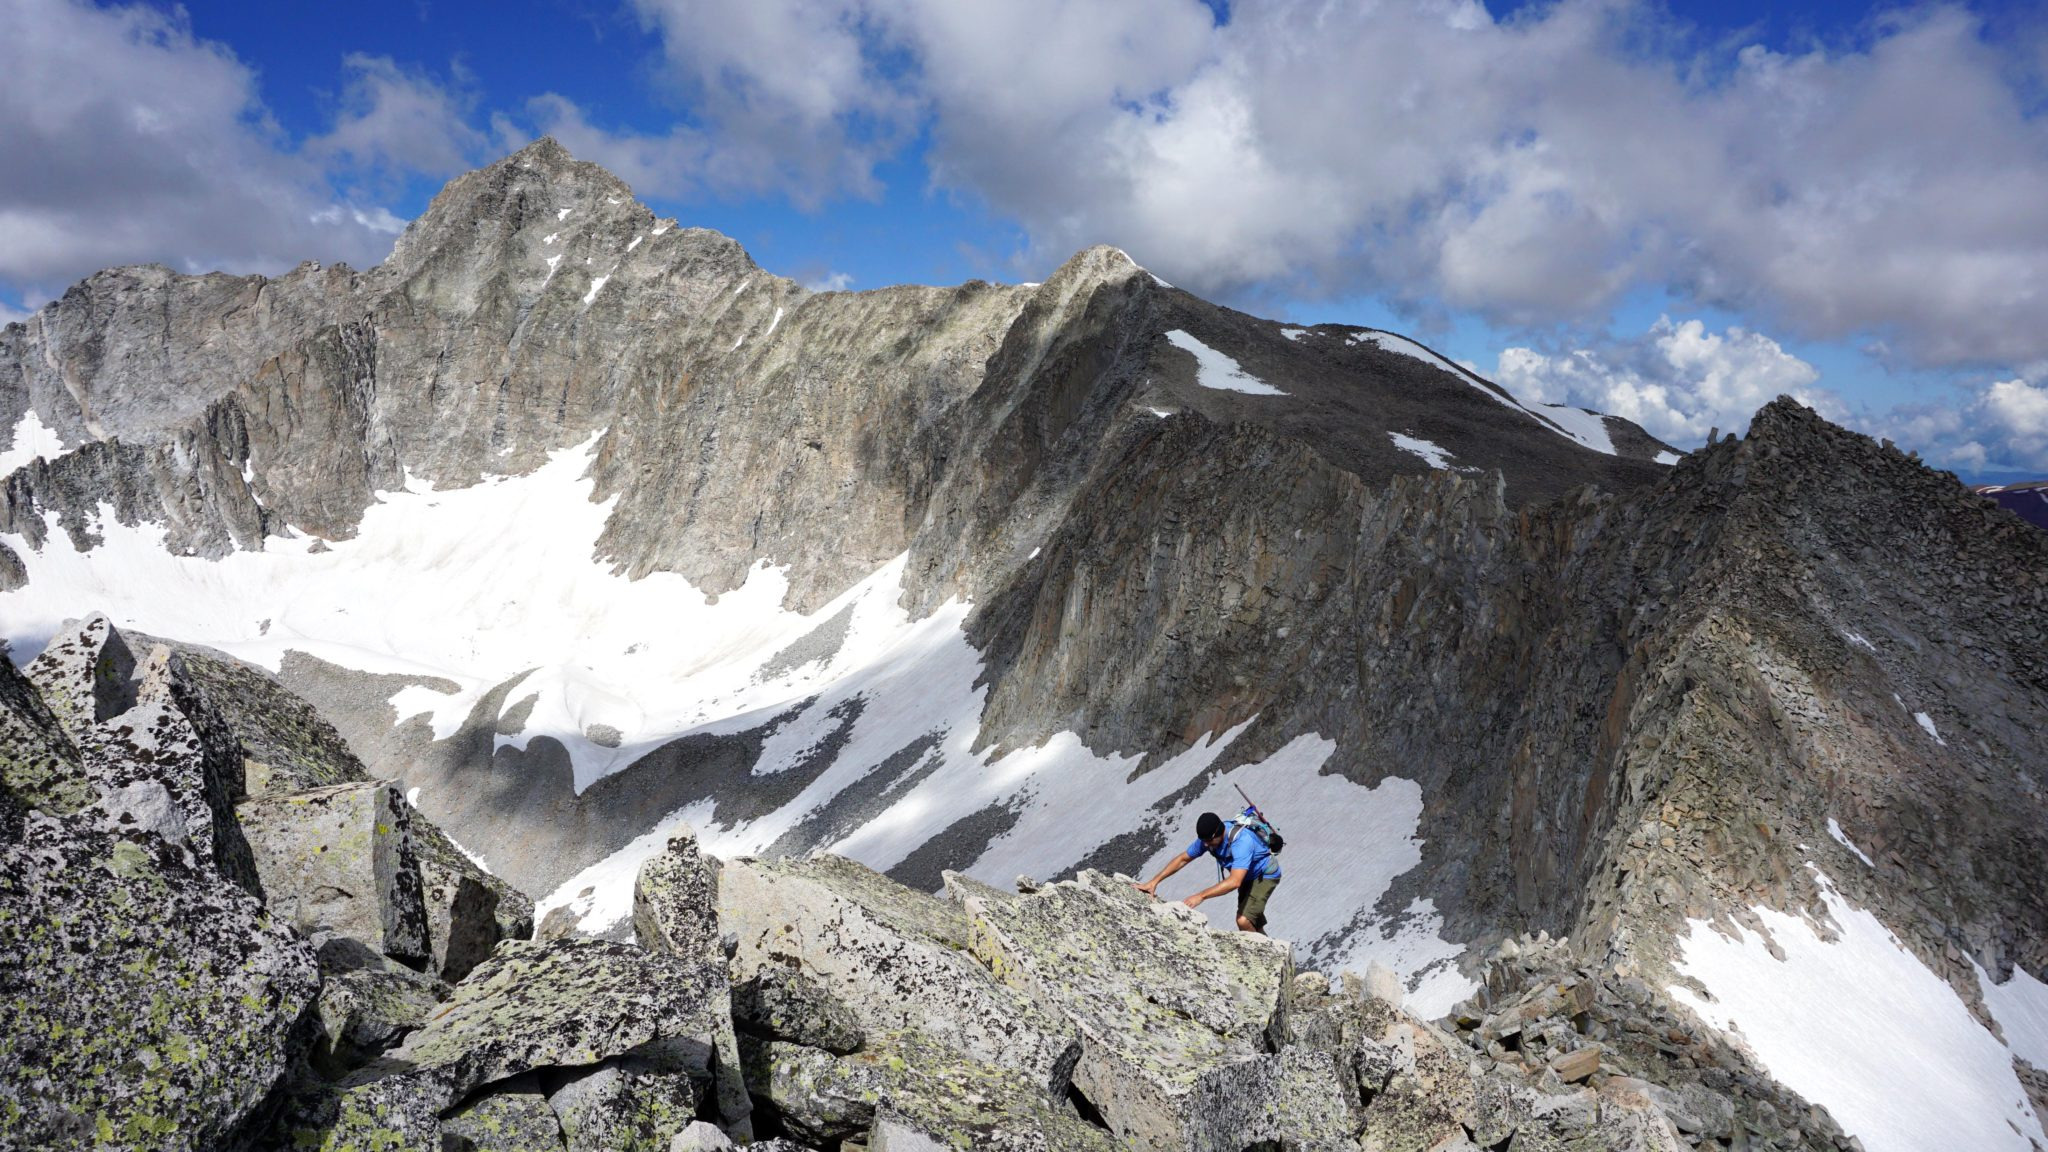 July Elk Hunting: Clark and Daly - Exploring the Rockies